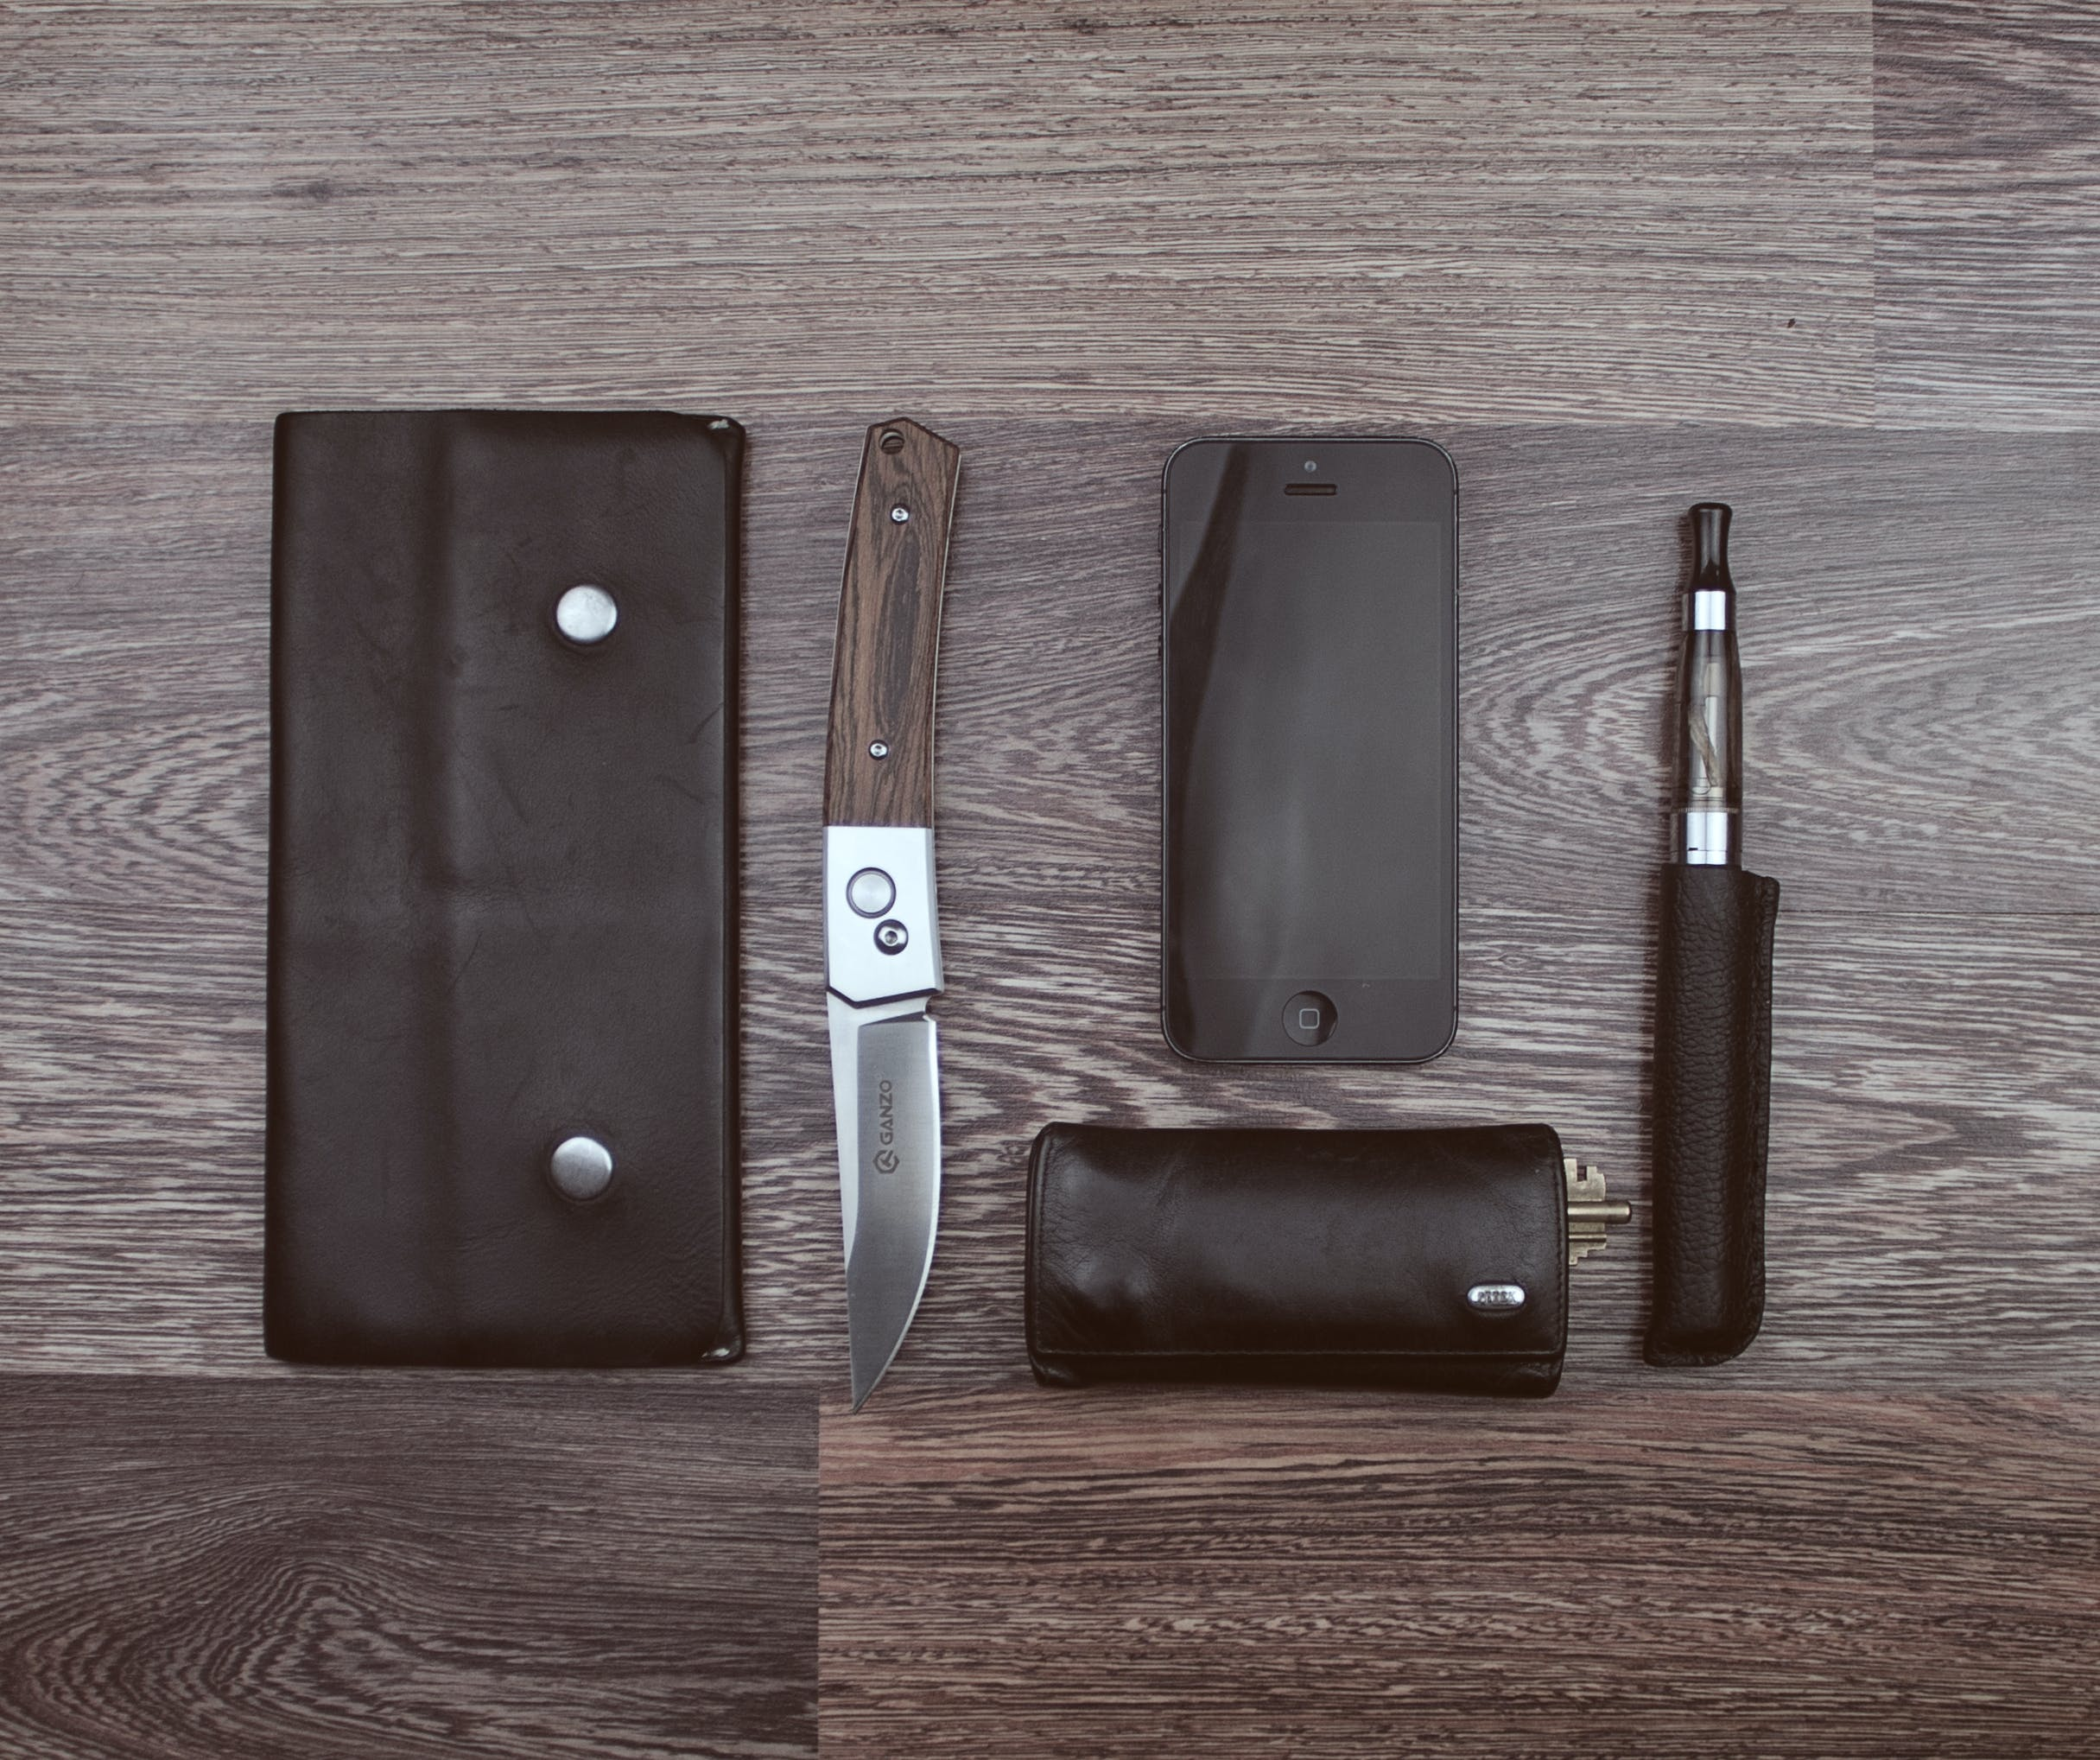 Brown Knife, Black Iphone 5 and Black Vaporizer Pen on Brown Wooden Surface